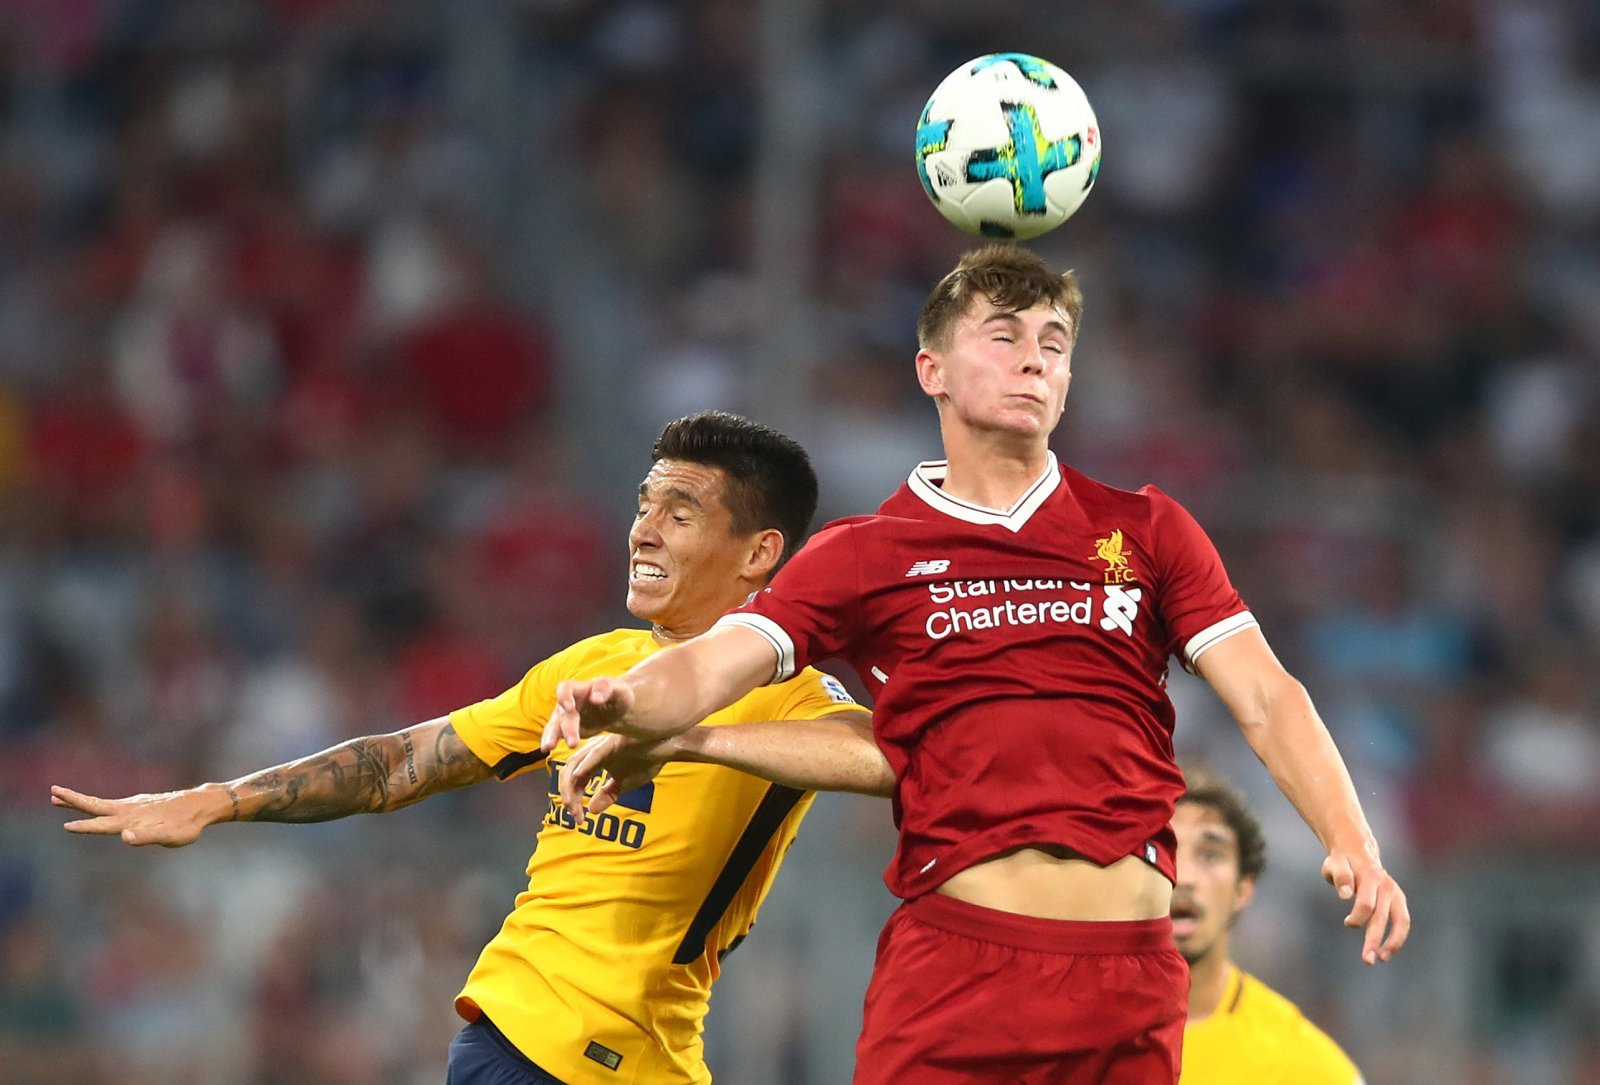 Liverpool: Ben Woodburn to return to Anfield following metatarsal injury